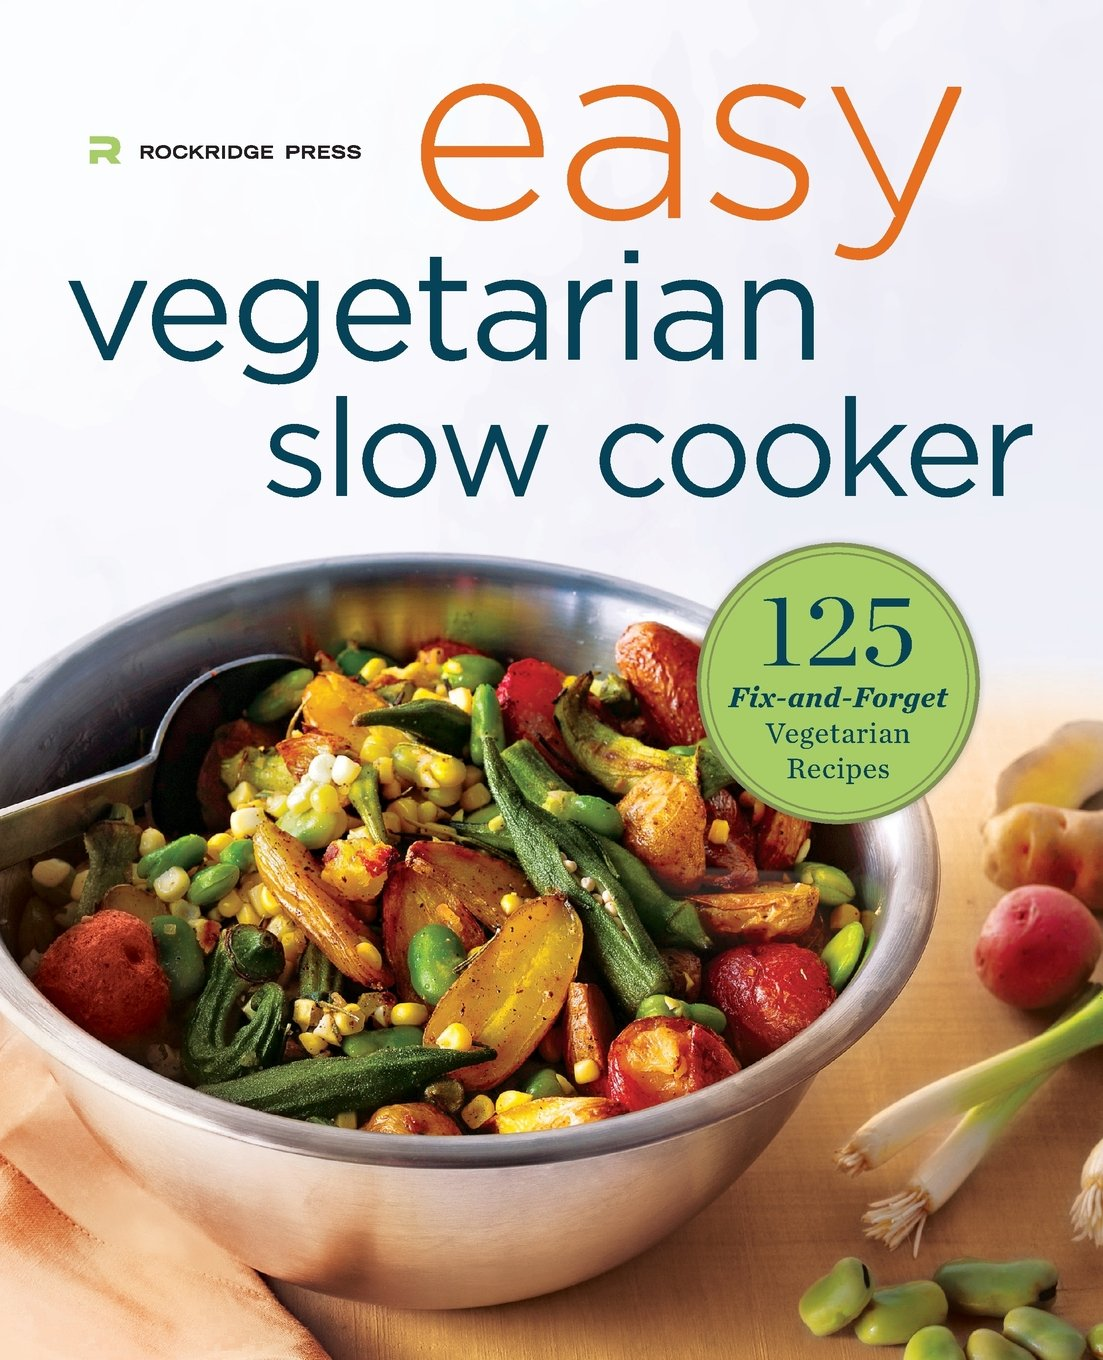 Easy Vegetarian Slow Cooker Cookbook 125 Fix And Forget Recipes Rockridge Press 9781623155520 Amazon Books